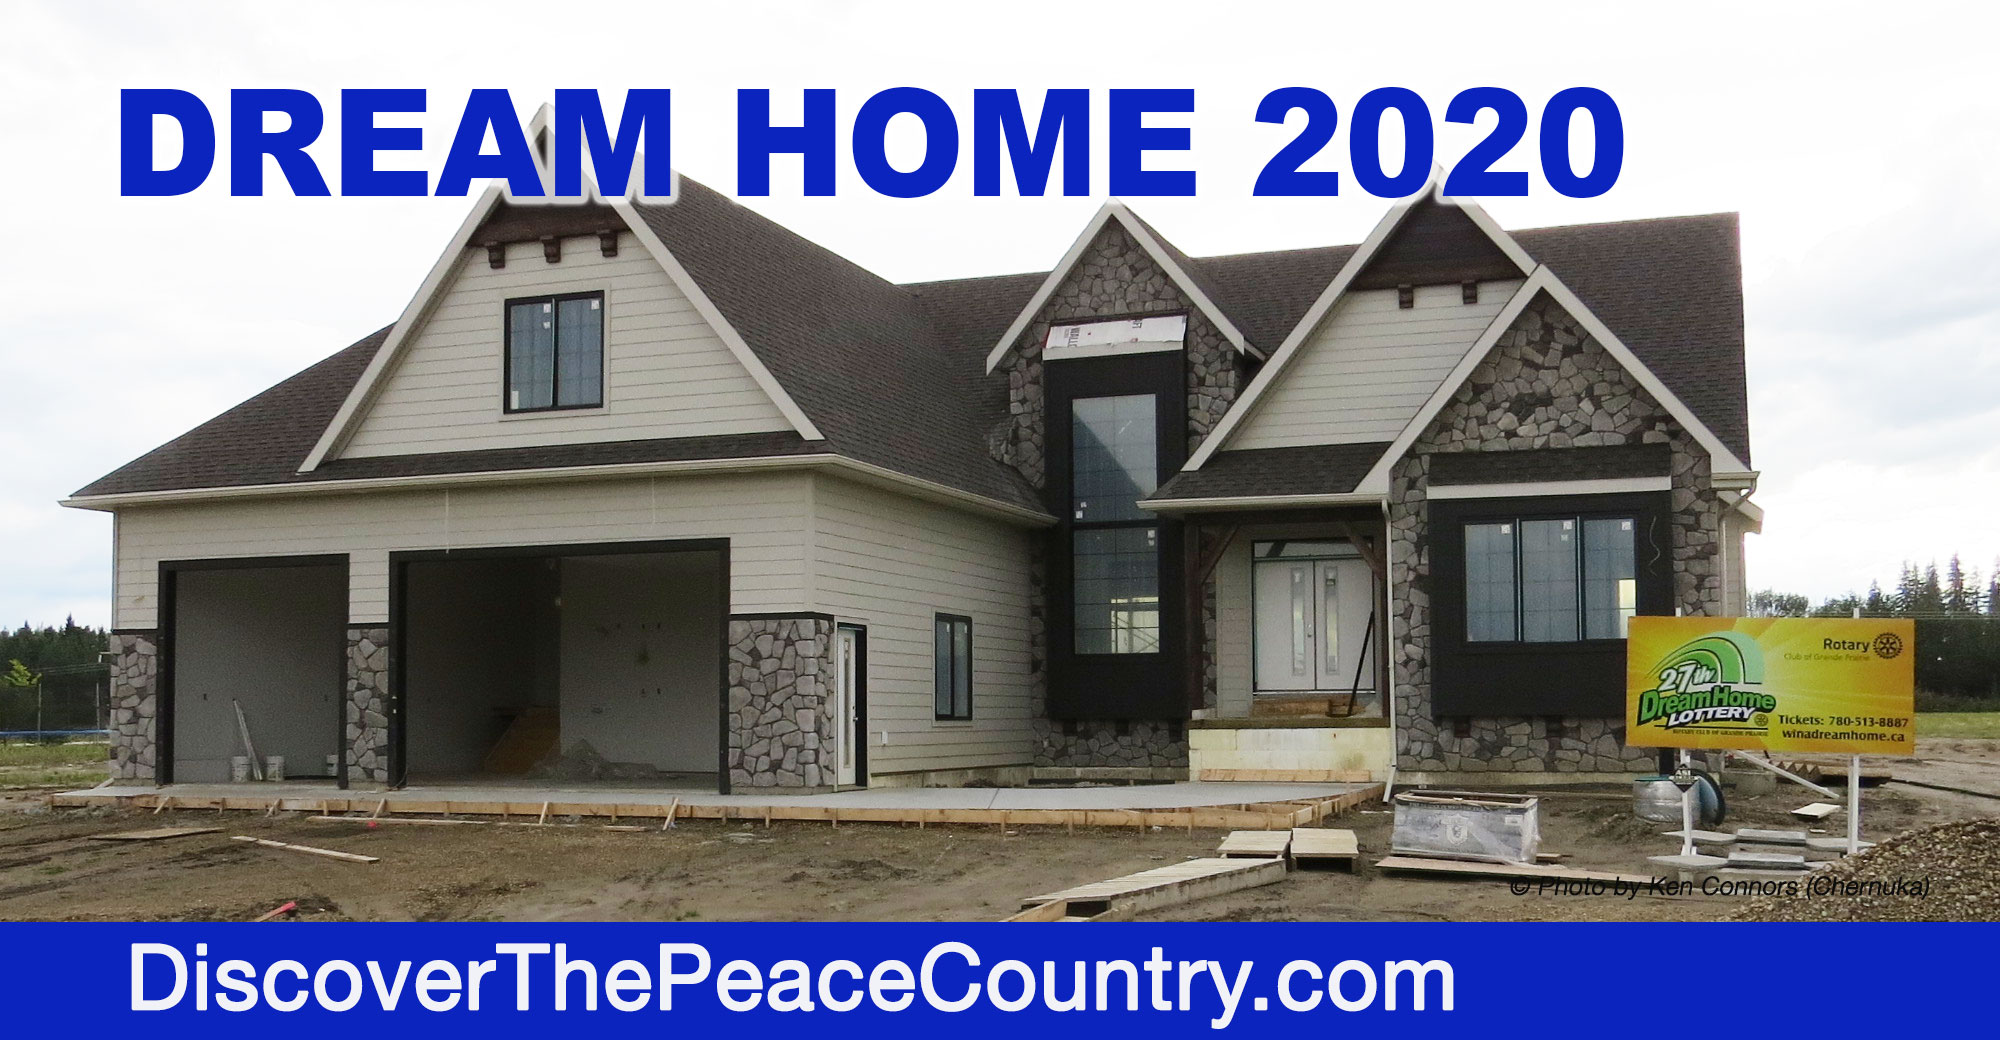 Dream Home 2020.Grande Prairie Dream Home 2020